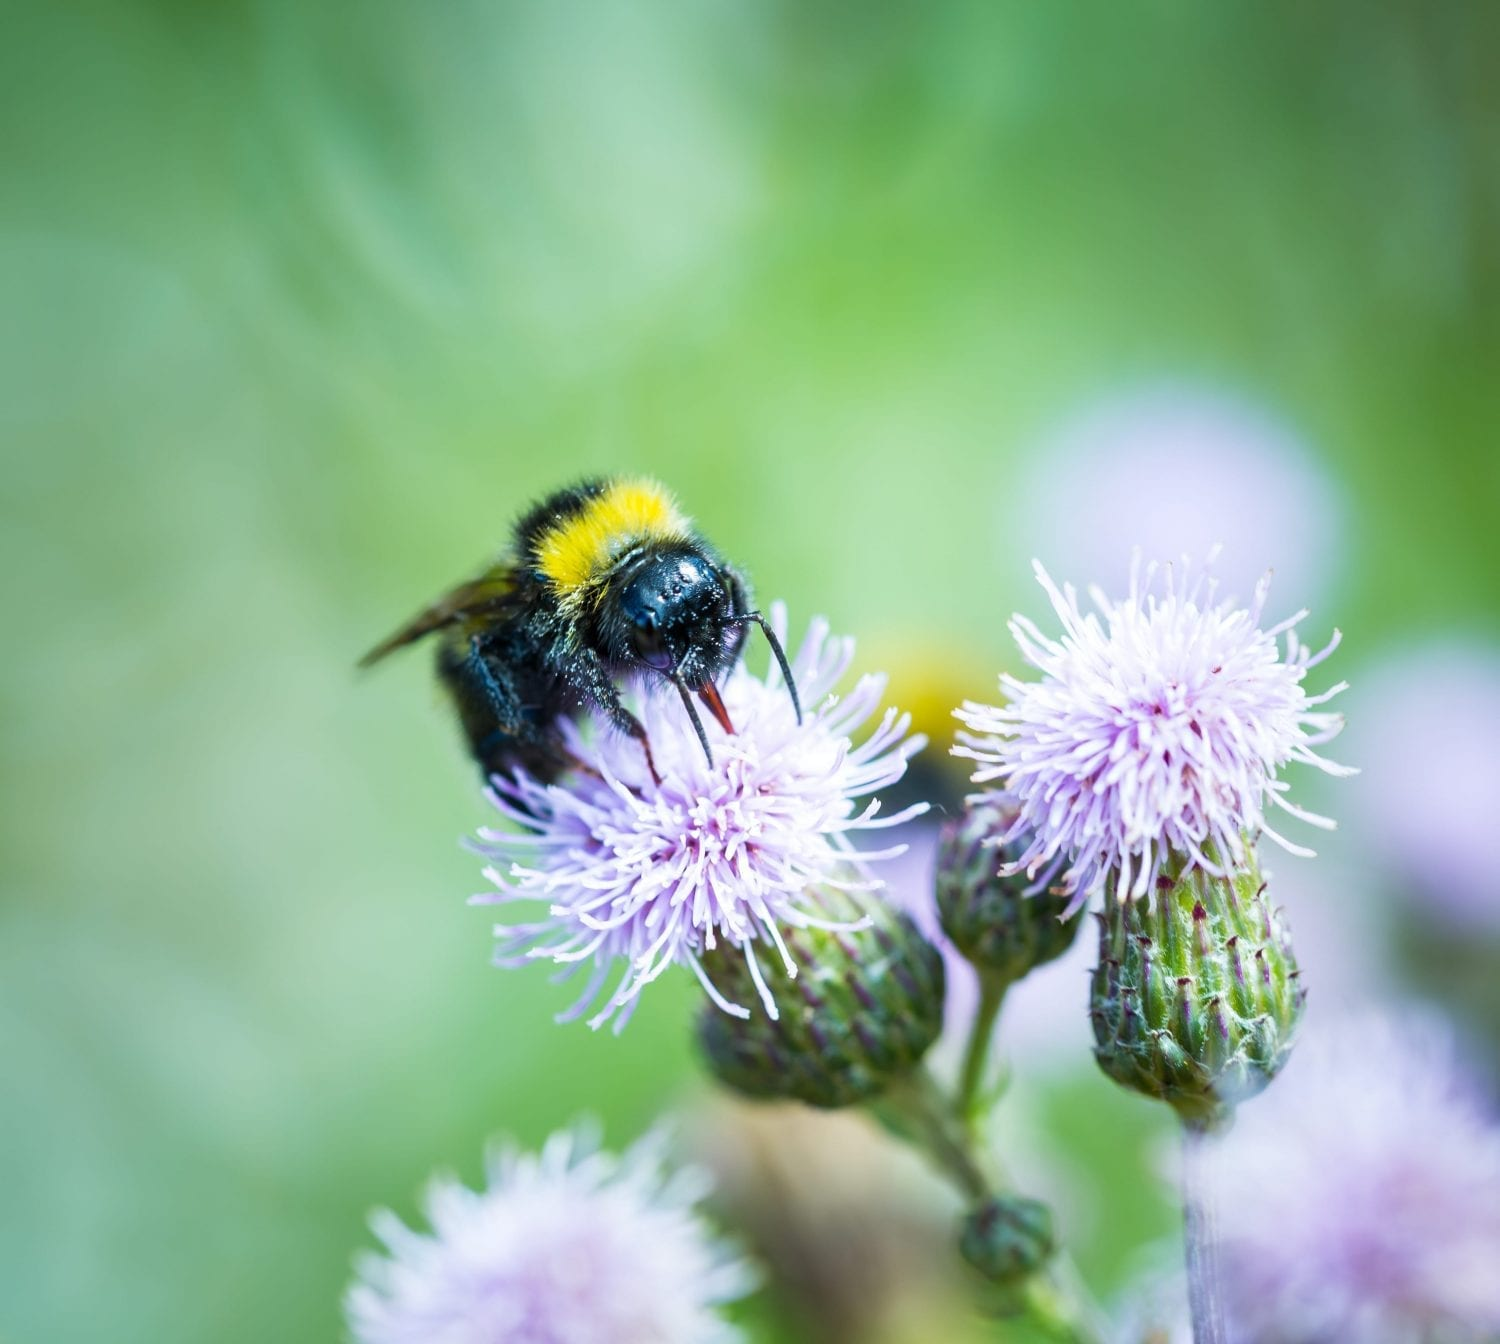 10 Ways to Help Save the Bees (and Why it's So Important)